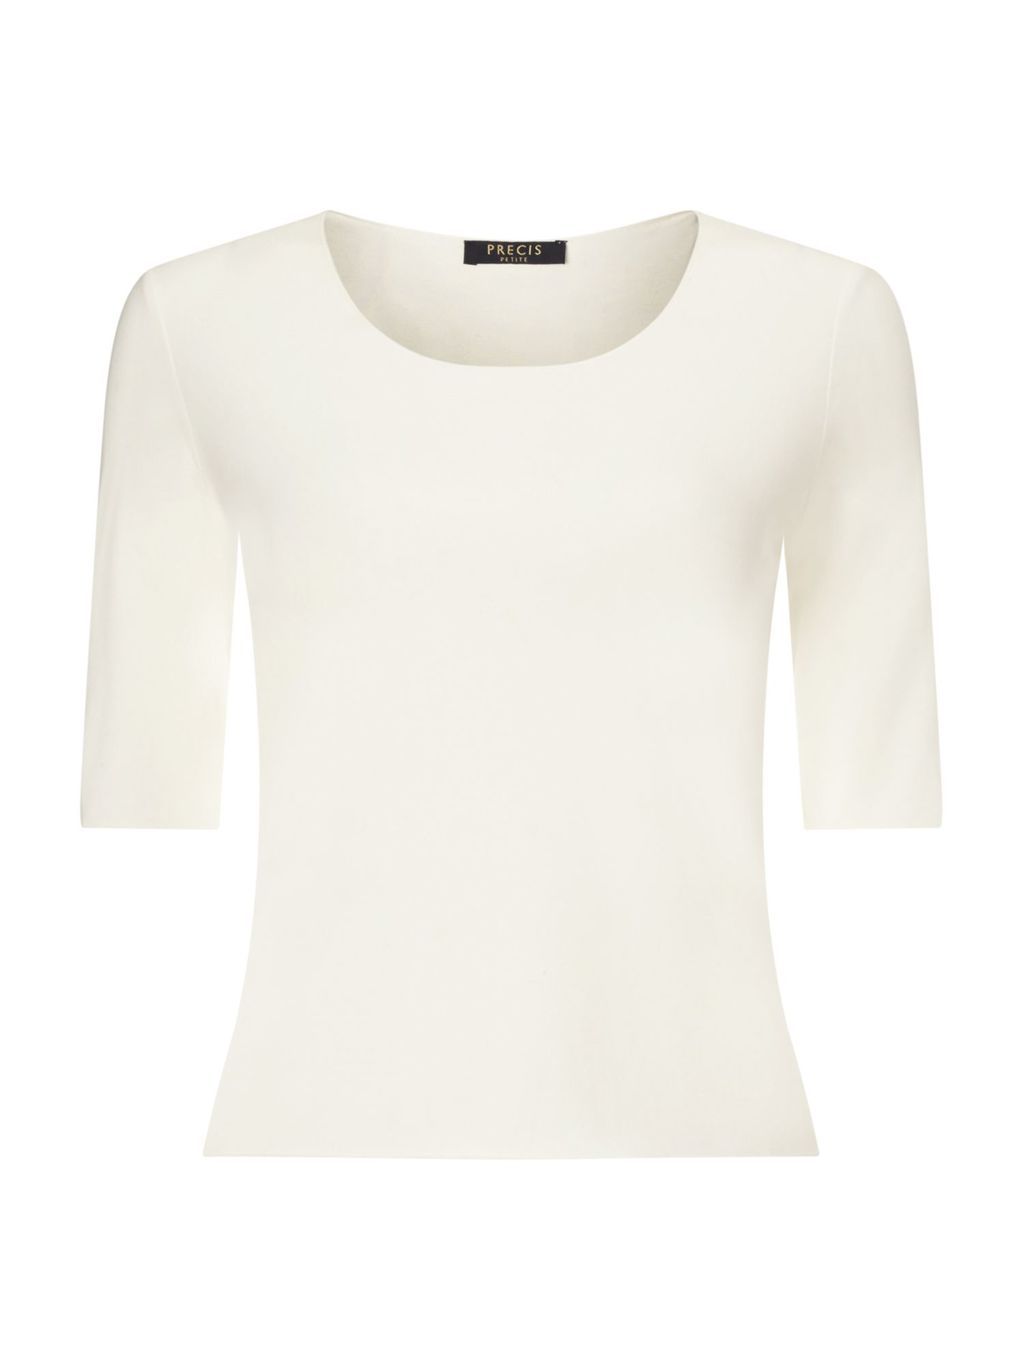 Jeff Banks Ivory Jersey Top, Neutral - pattern: plain; style: t-shirt; predominant colour: ivory/cream; occasions: casual; length: standard; fibres: cotton - stretch; fit: body skimming; neckline: crew; sleeve length: half sleeve; sleeve style: standard; pattern type: fabric; texture group: jersey - stretchy/drapey; season: s/s 2016; wardrobe: basic